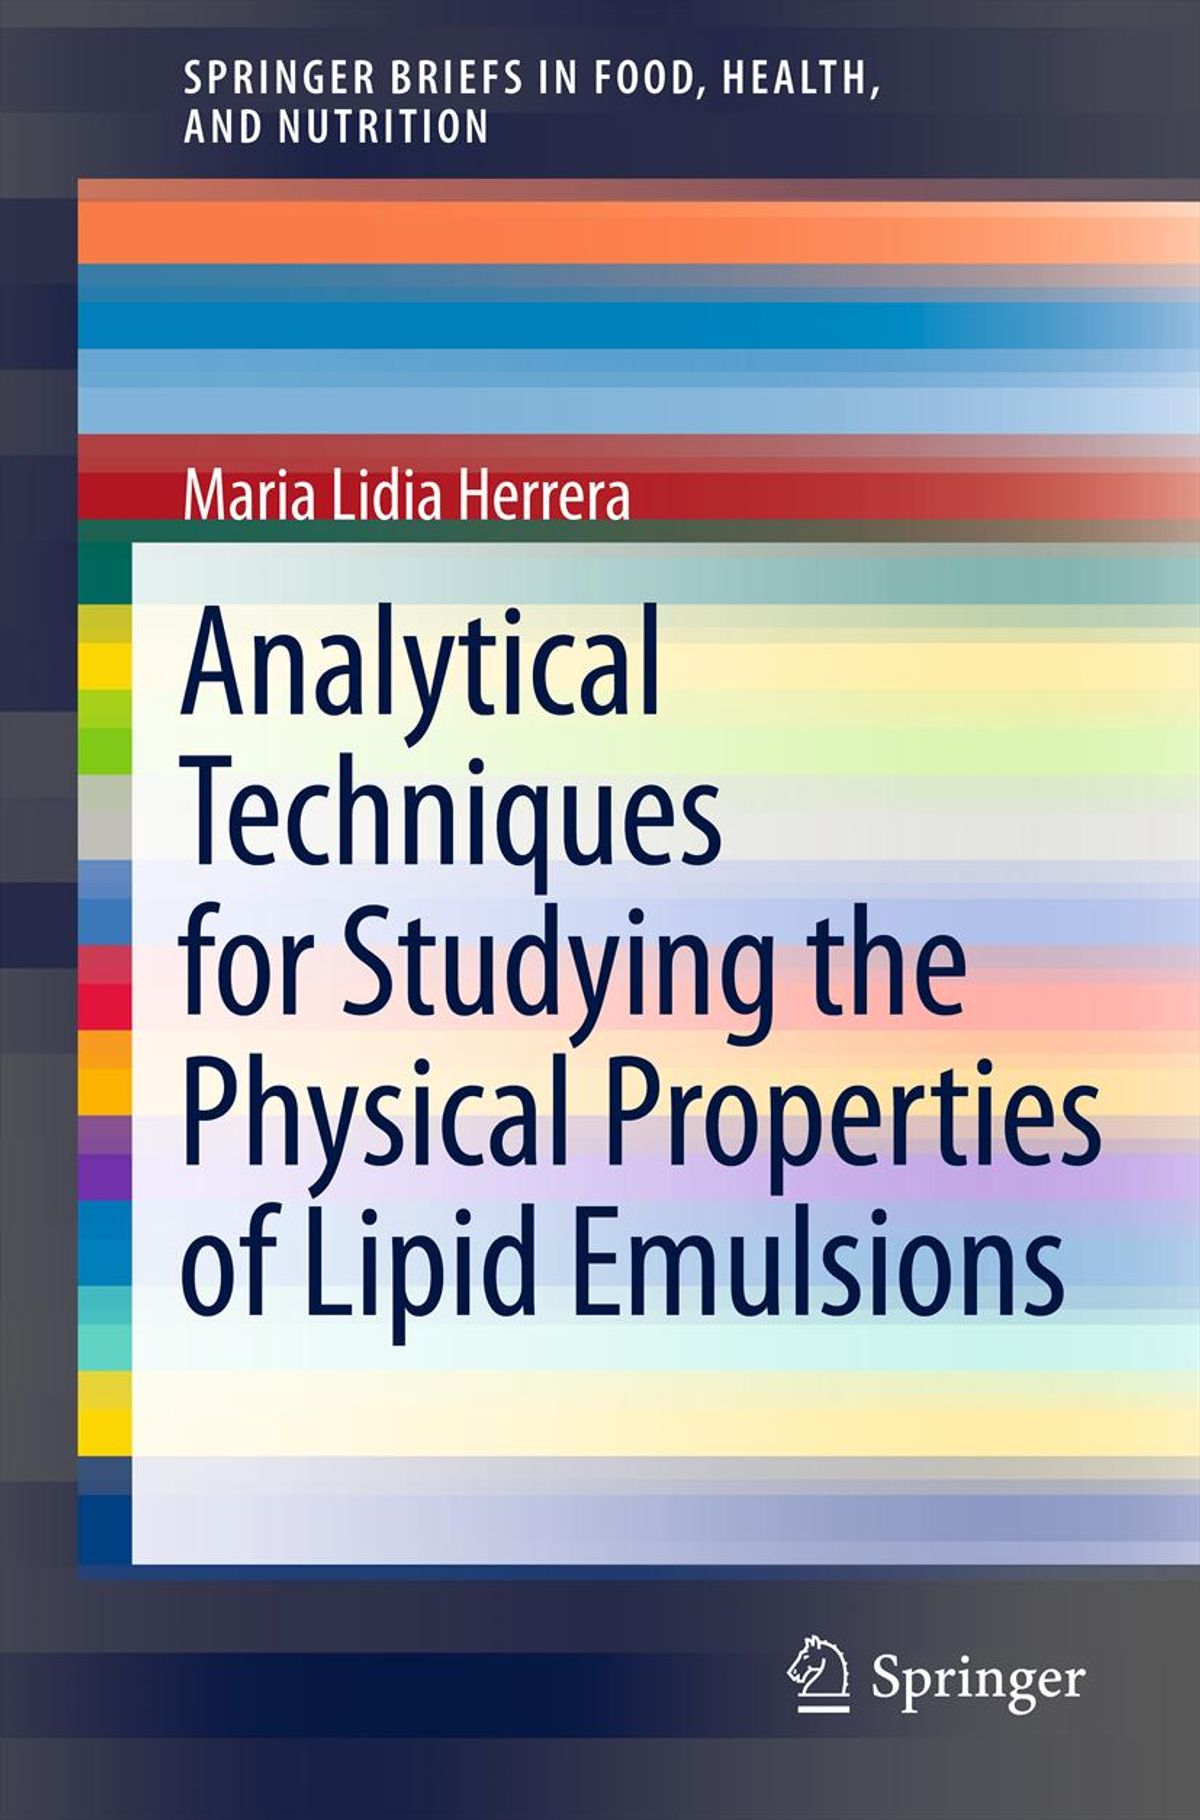 Analytical Techniques for Studying the Physical Properties of Lipid Emulsions